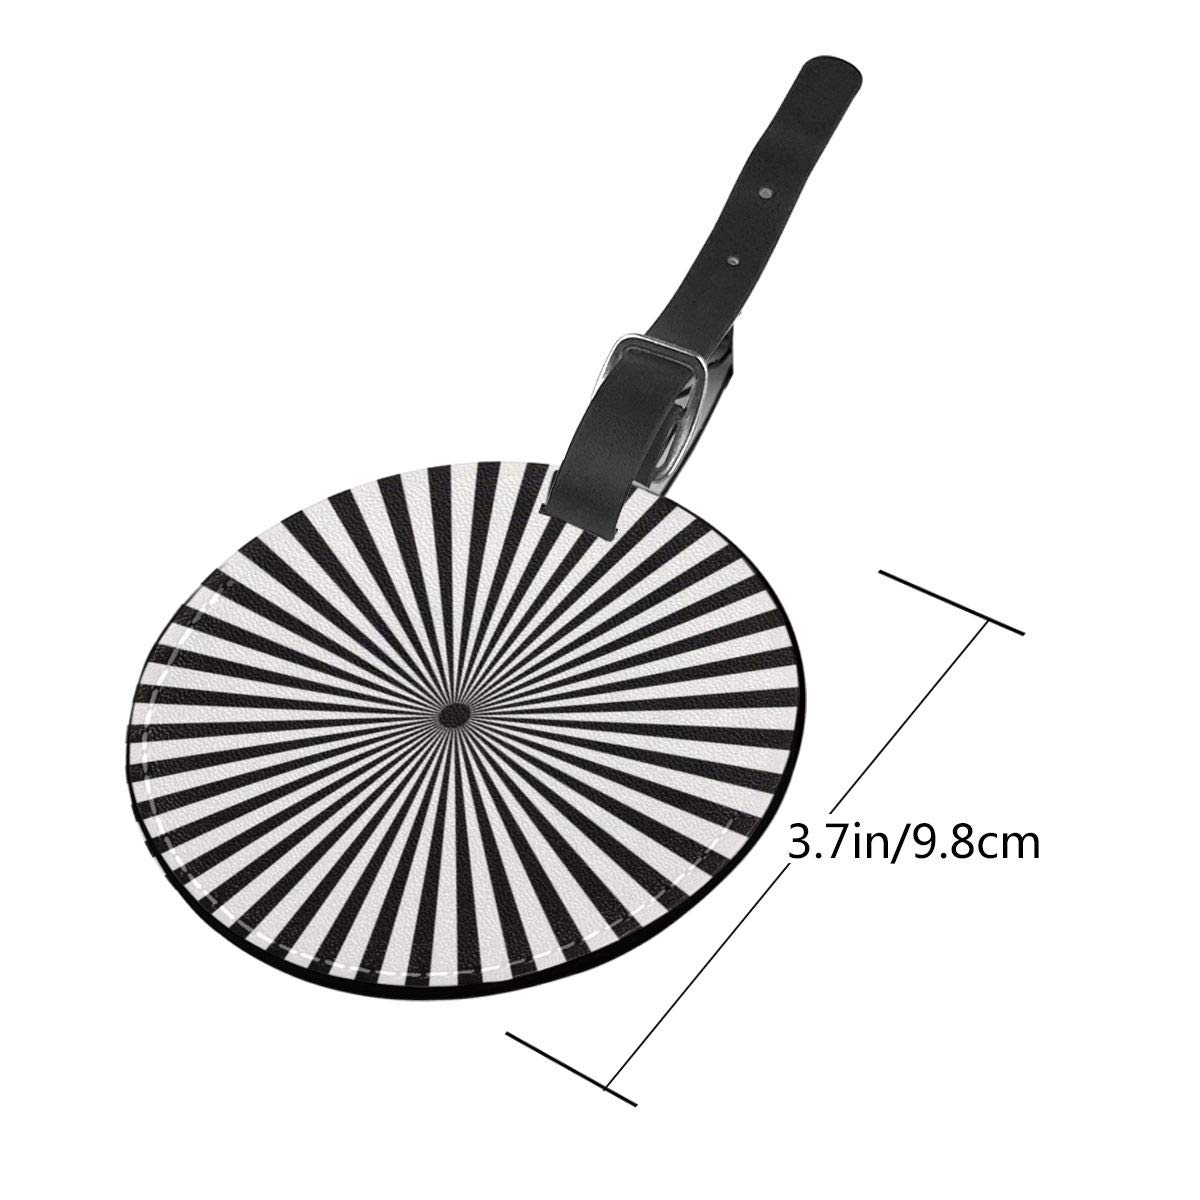 Round Luggage Tags Radiating Black And White Line PU Leather Suitcase Labels Bag